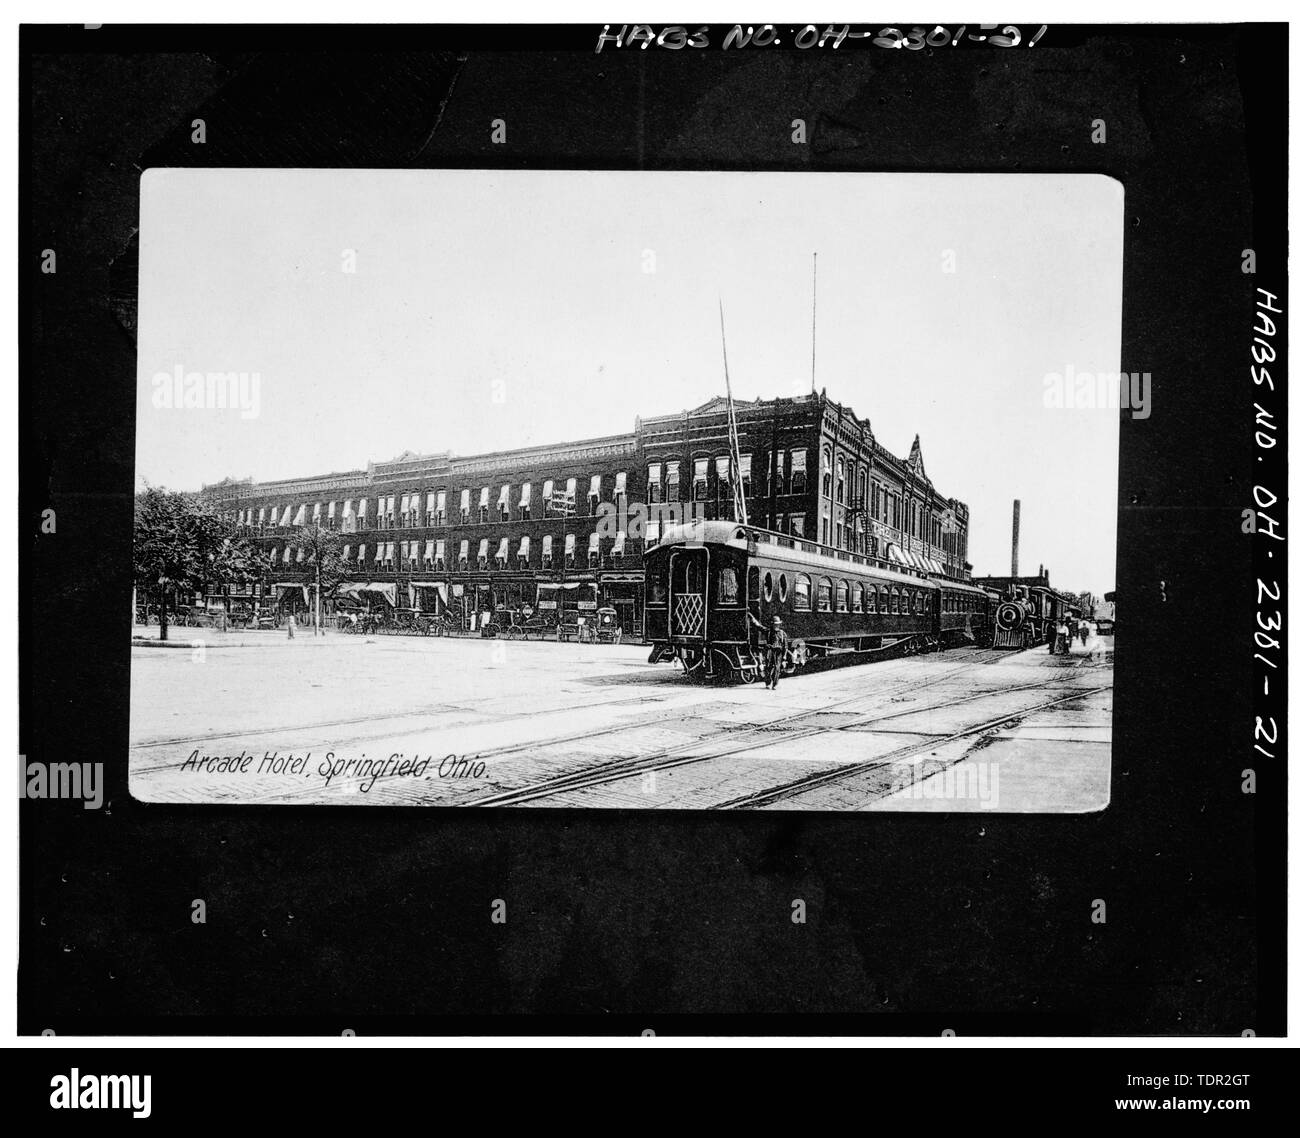 Photograph of postcard (from the Clark County Historical Society, Springfield, Ohio, no date) ARCADE HOTEL, VIEW NORTHEAST, WEST AND SOUTH FACADES. - Arcade Hotel, Fountain Avenue, bounded by High and Washington Streets, Springfield, Clark County, OH Stock Photo